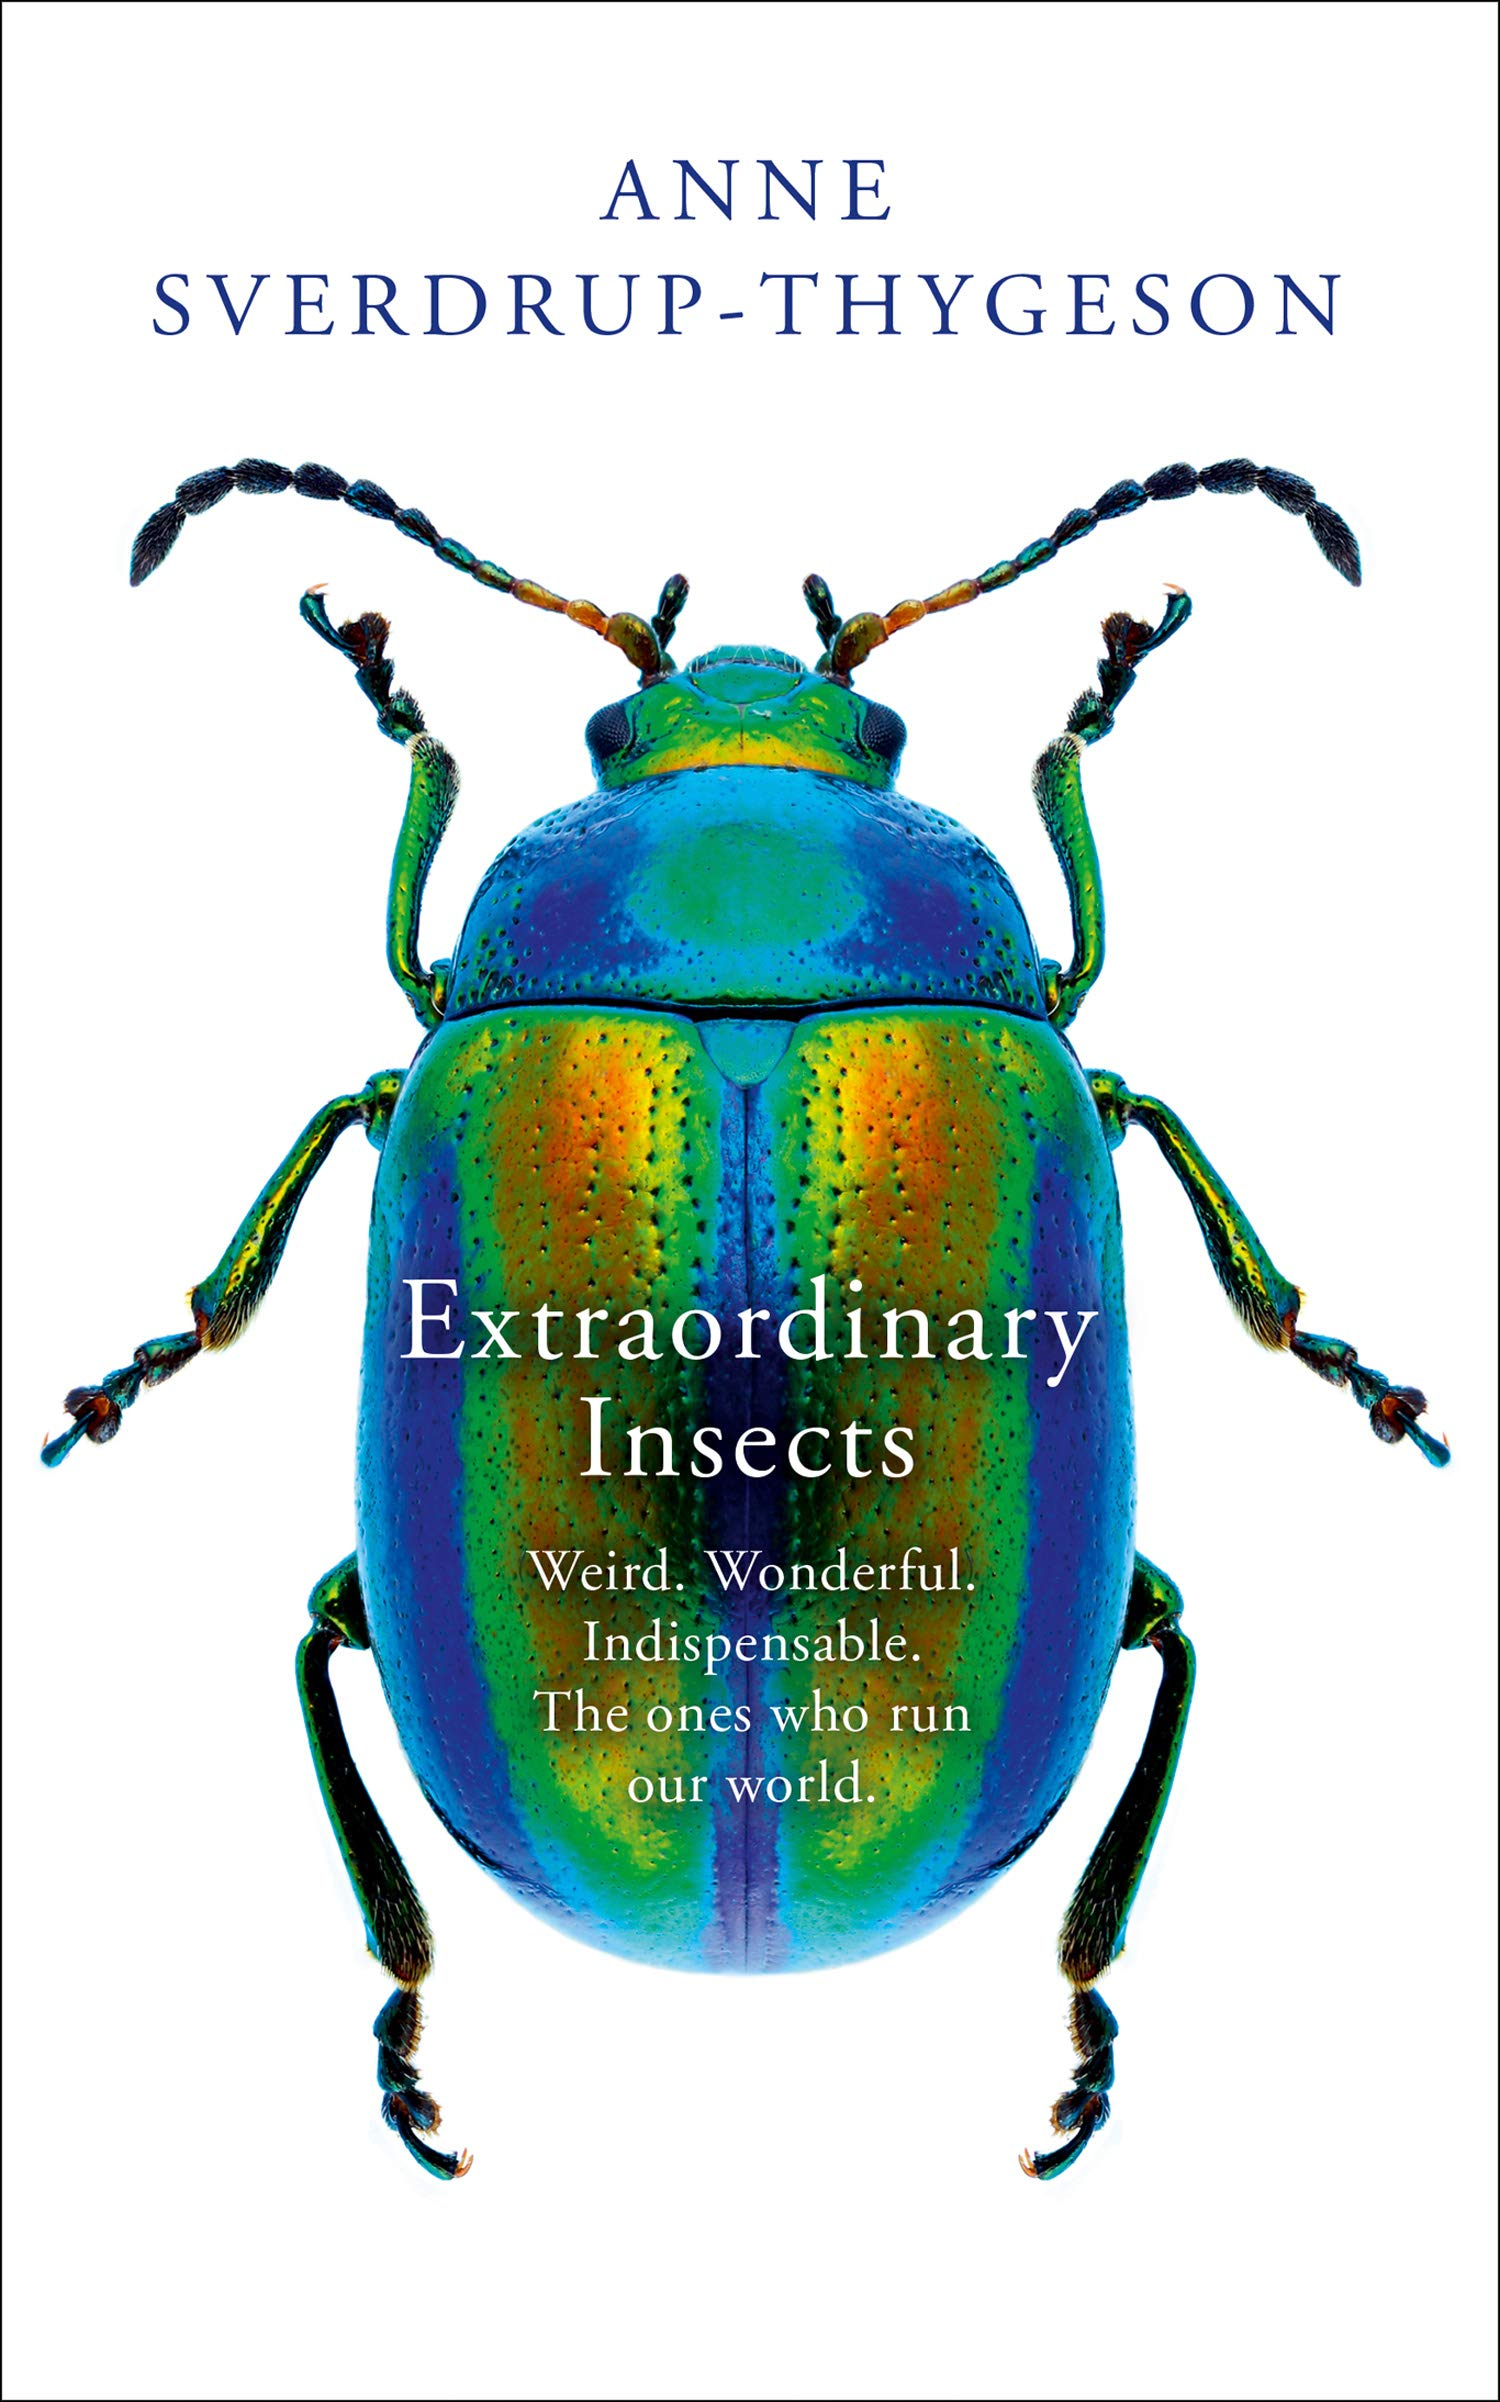 Extraordinary Insects with Professor Anne Sverdrup-Thygeson